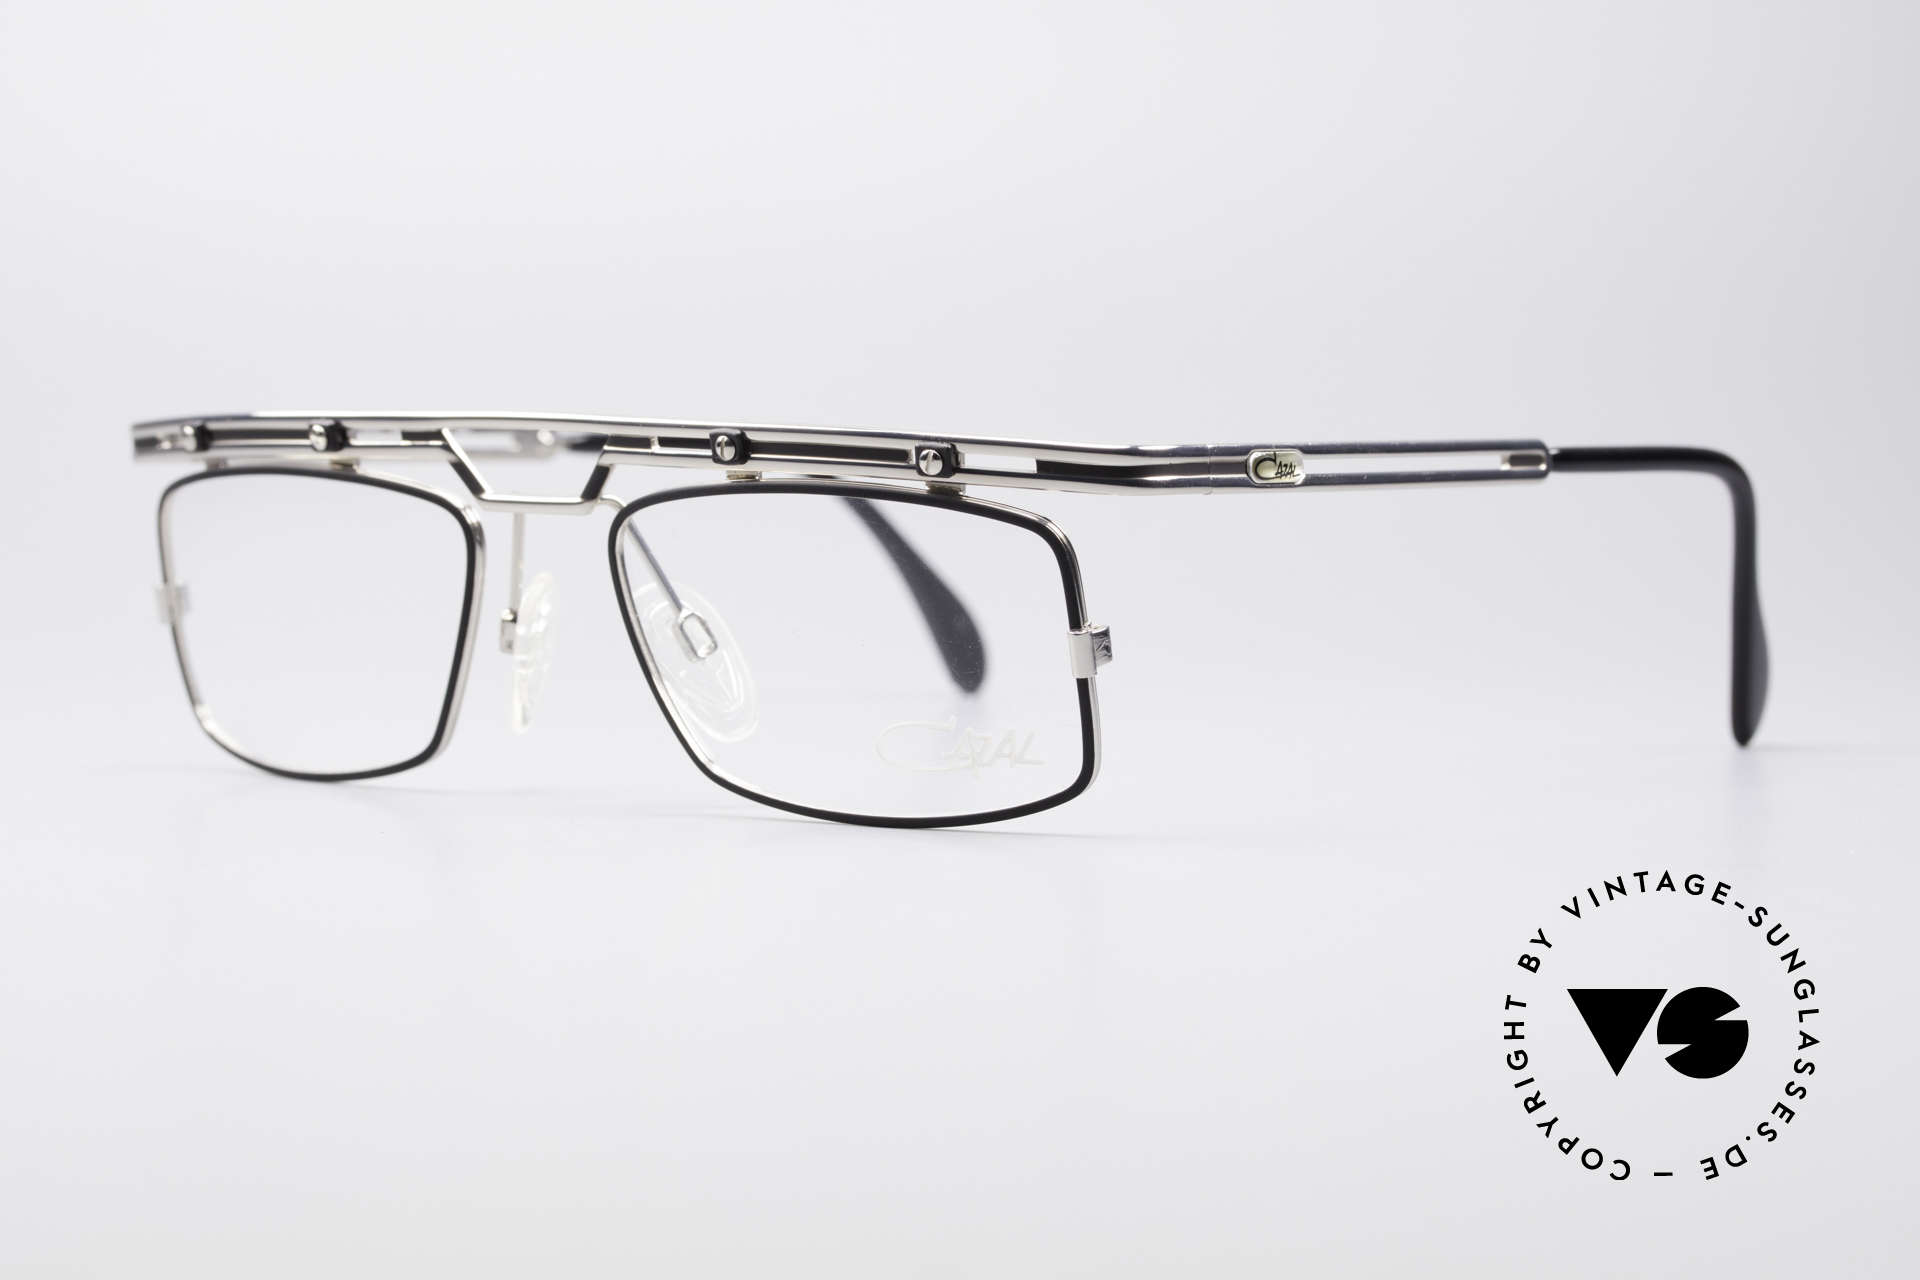 Cazal 975 True Vintage No Retro Specs, great metalwork and overall craftmanship; durable!, Made for Men